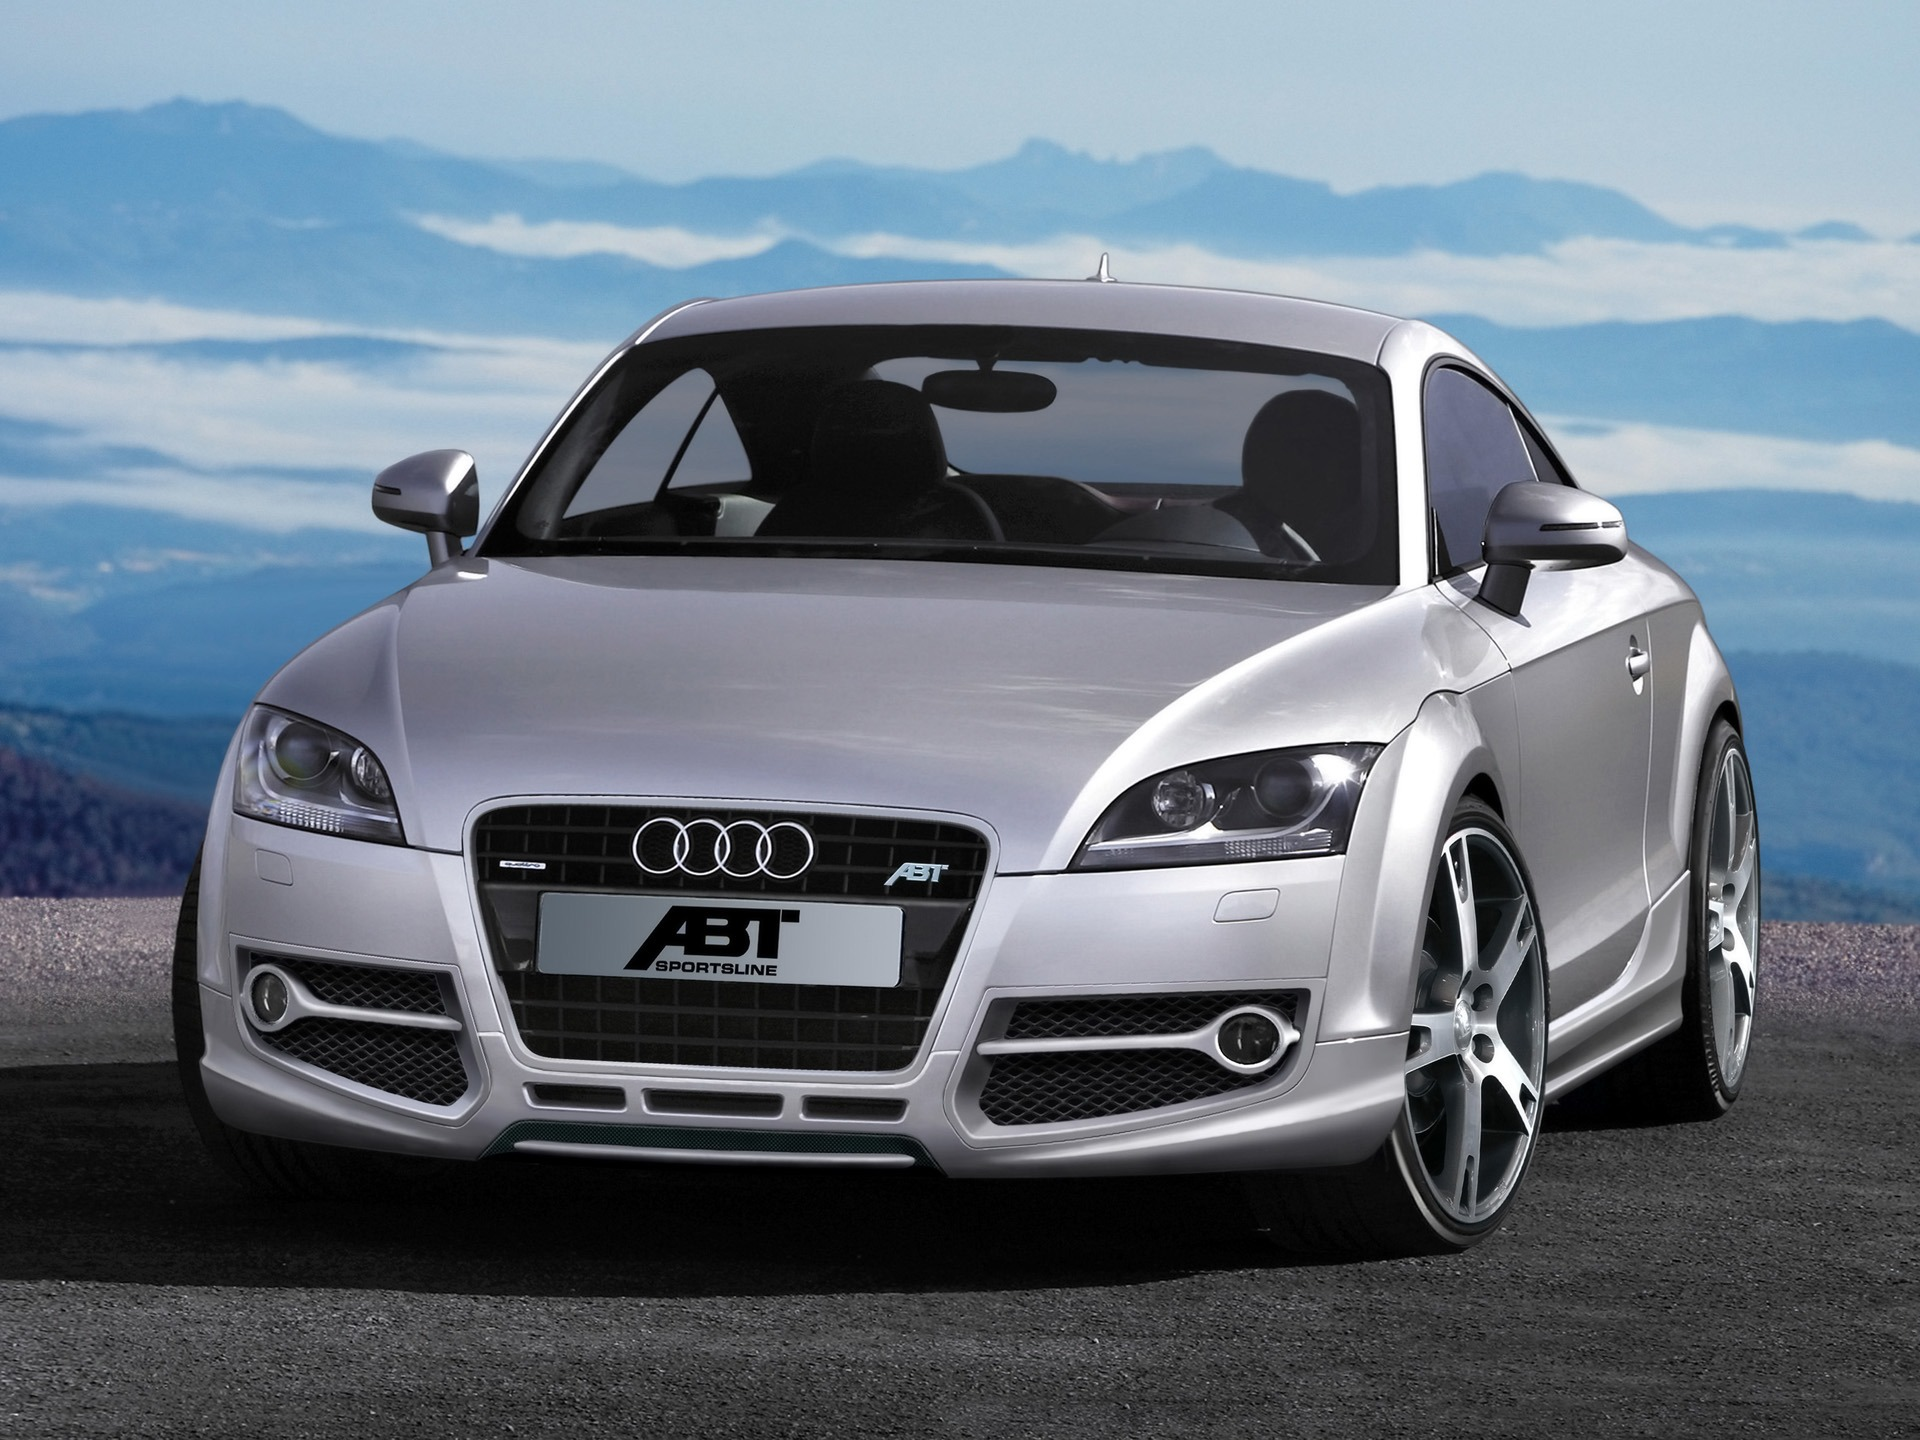 Audi Car Wallpaper Download